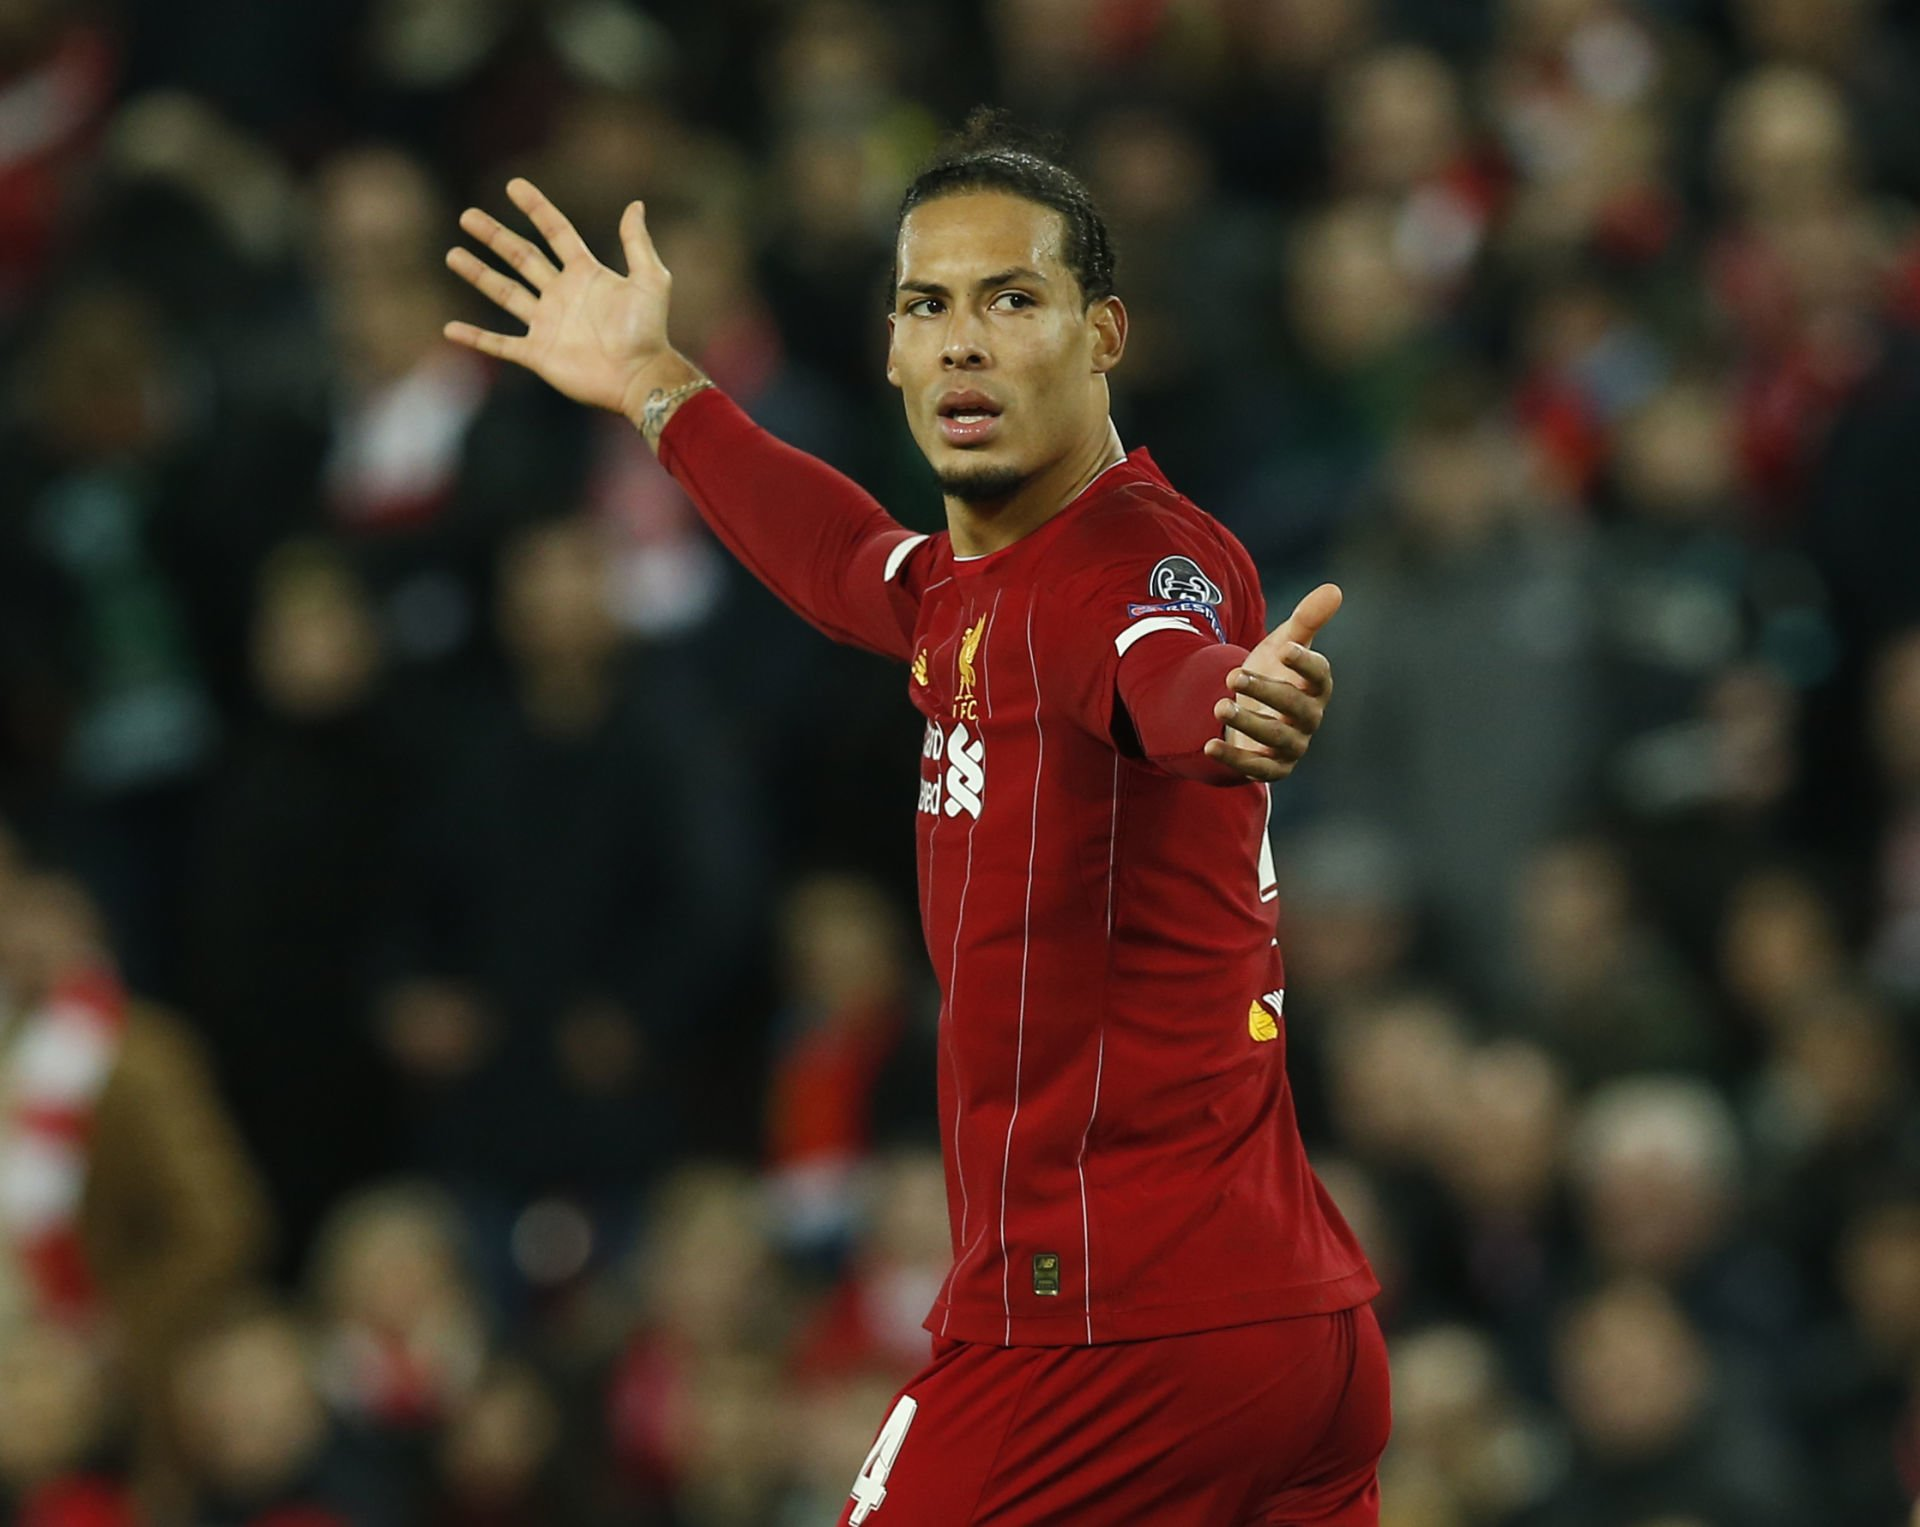 November 27, 2019, Liverpool, United Kingdom: Virgil van Dijk of Liverpool during the UEFA Champions League match at Anfield, Liverpool. Picture date: 27th November 2019. Picture credit should read: Andrew Yates/Sportimage(Credit Image: © Andrew Yates/CSM via ZUMA Wire) LIGA MISTRZOW PILKA NOZNA SEZON 2019/2020 FOT. ZUMA/NEWSPIX.PL POLAND ONLY! --- Newspix.pl *** Local Caption *** www.newspix.pl mail us: info@newspix.pl call us: 0048 022 23 22 222 --- Polish Picture Agency by Ringier Axel Springer Poland